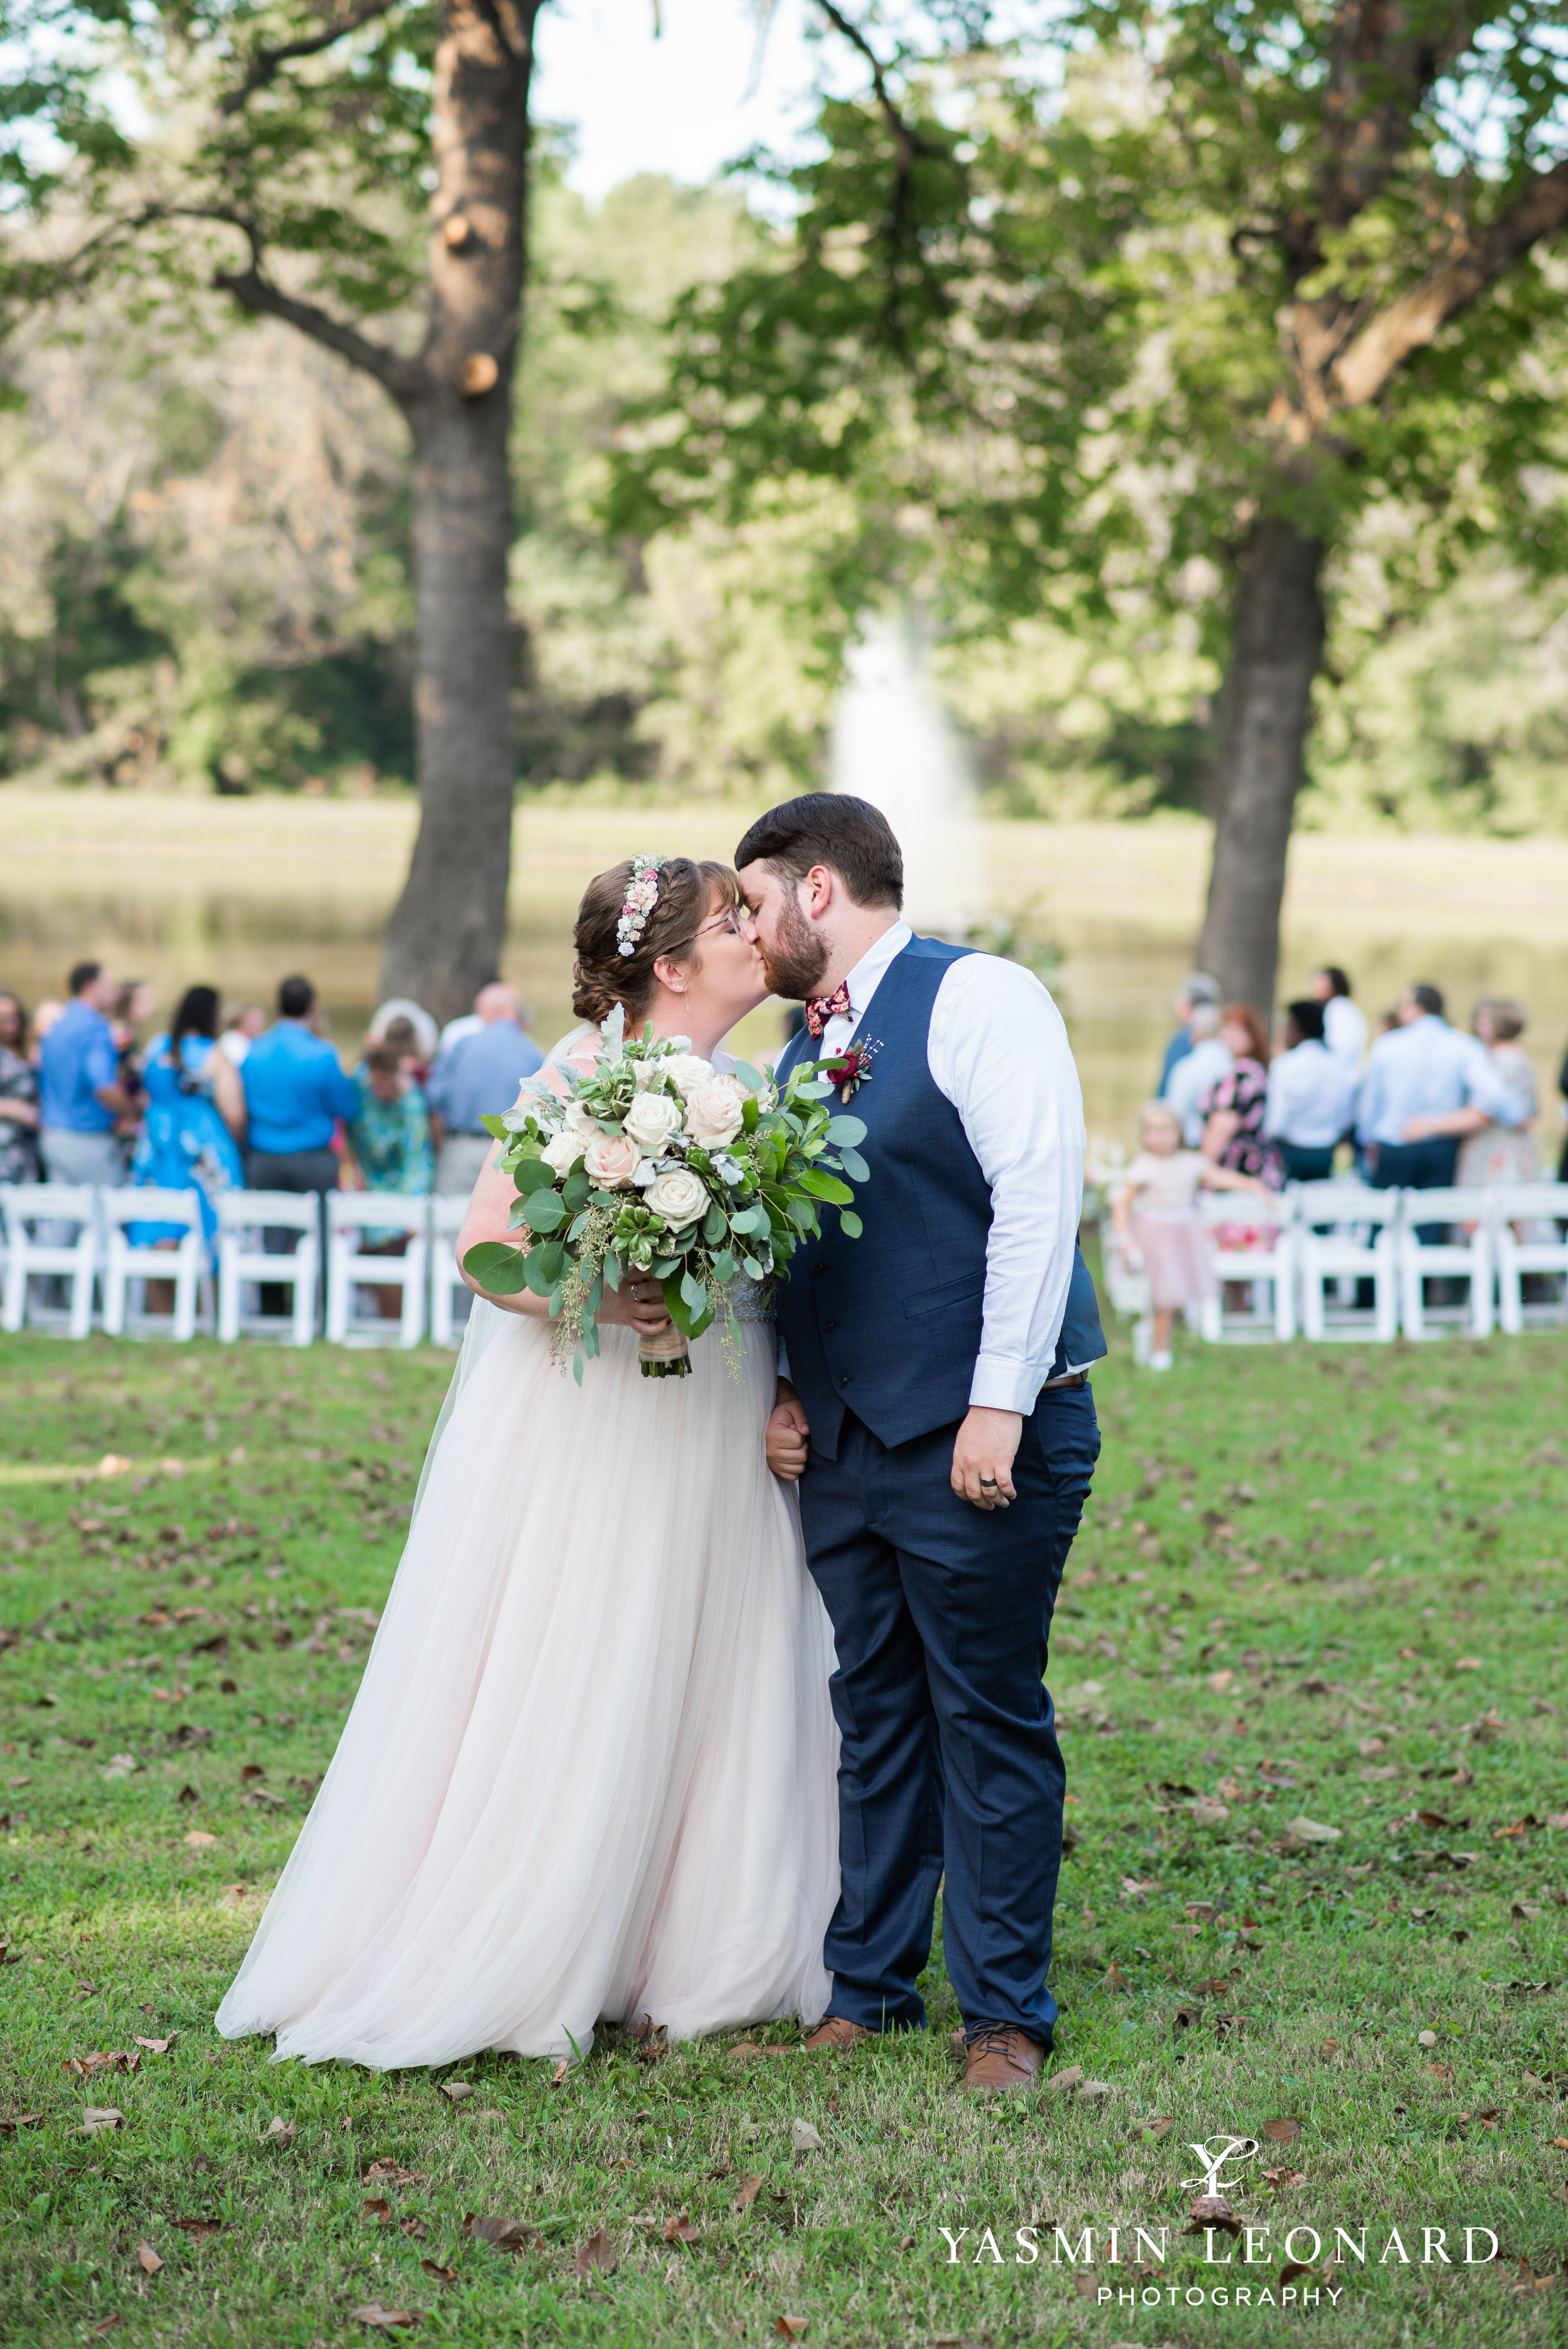 Hannah and David - l'abri at Linwood - NC Barn Weddings - Guys and Girls on Bride's Side - How to incorporate guys with bridesmaids - navy fall wedding - high point photographer - nc wedding venues - triad weddings-30.jpg